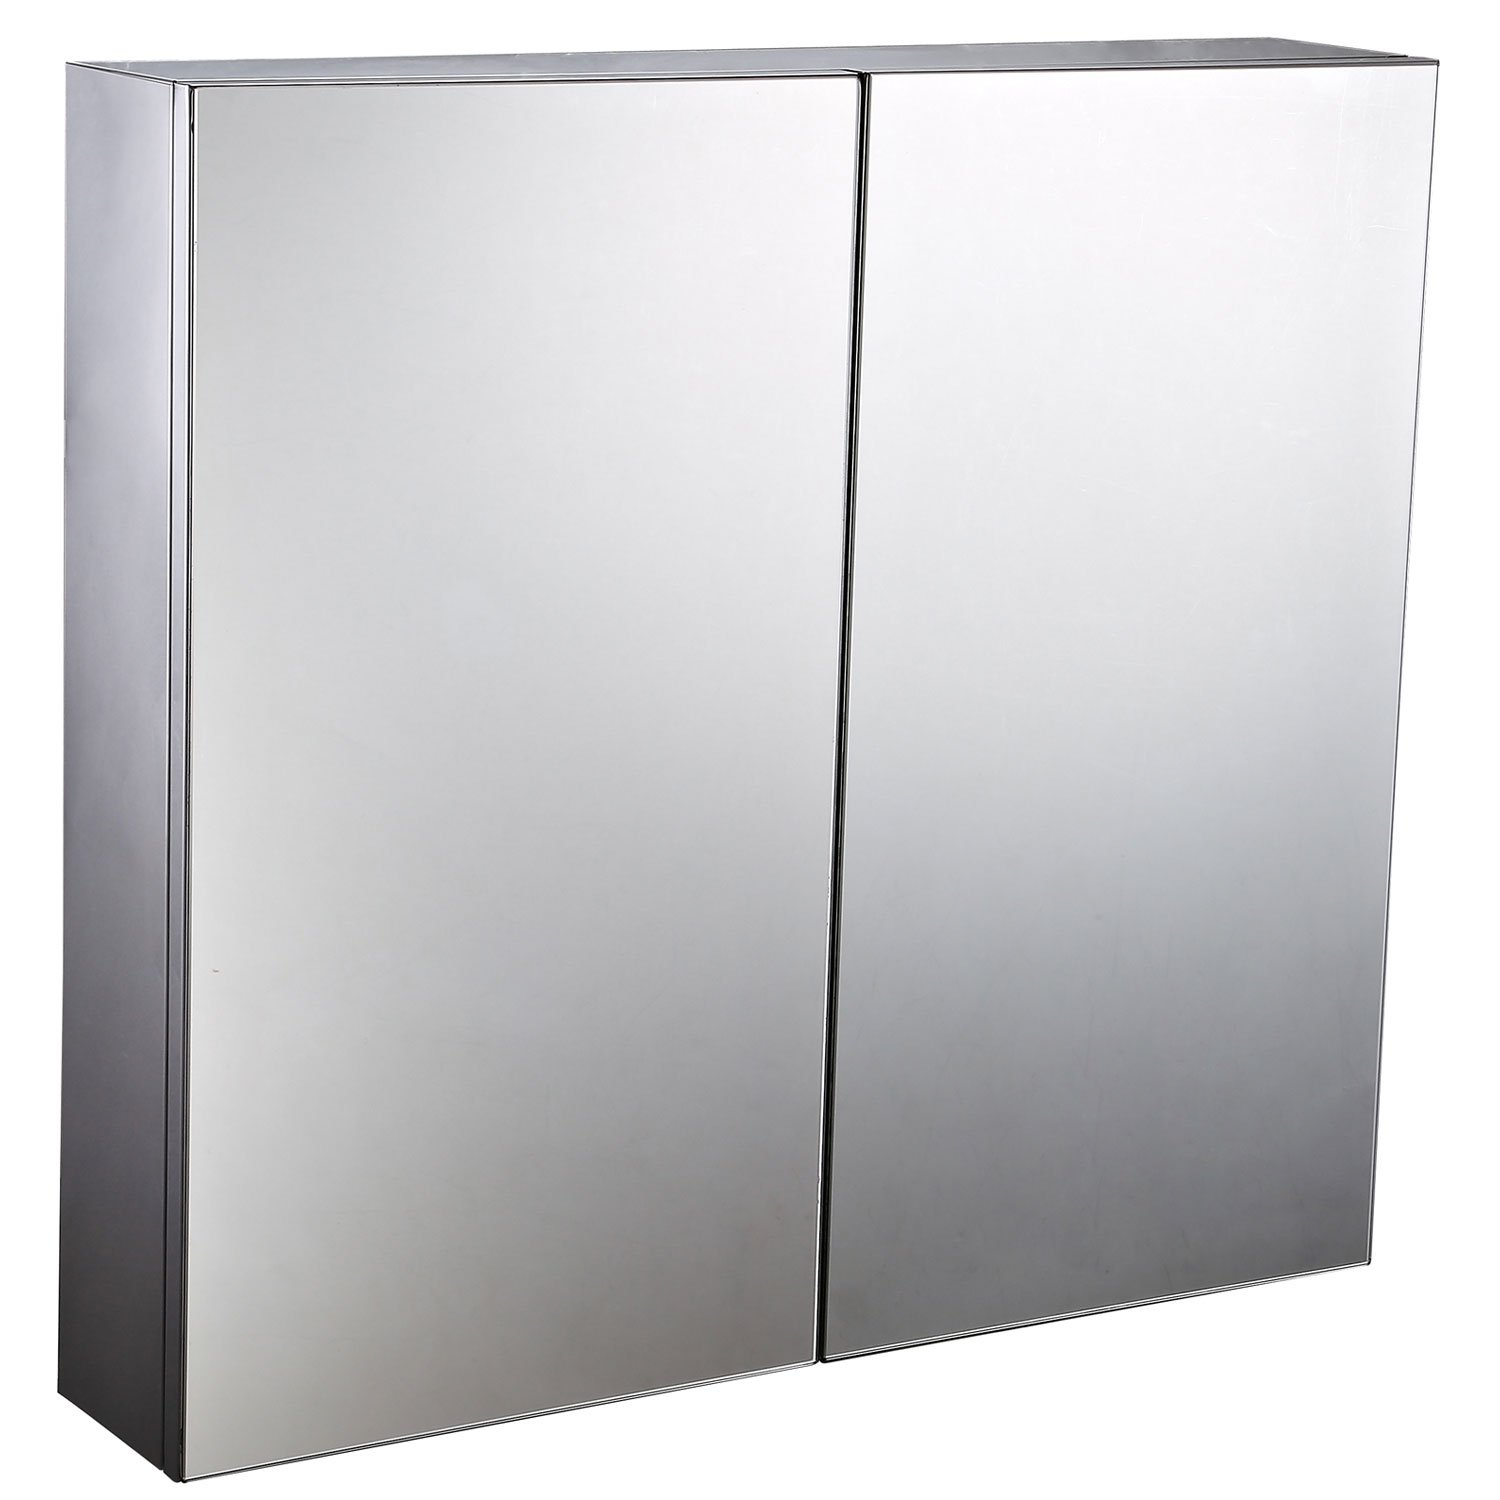 HomCom 22'' Stainless Steel Double Doored Wall Mounted Mirrored Medicine Cabinet